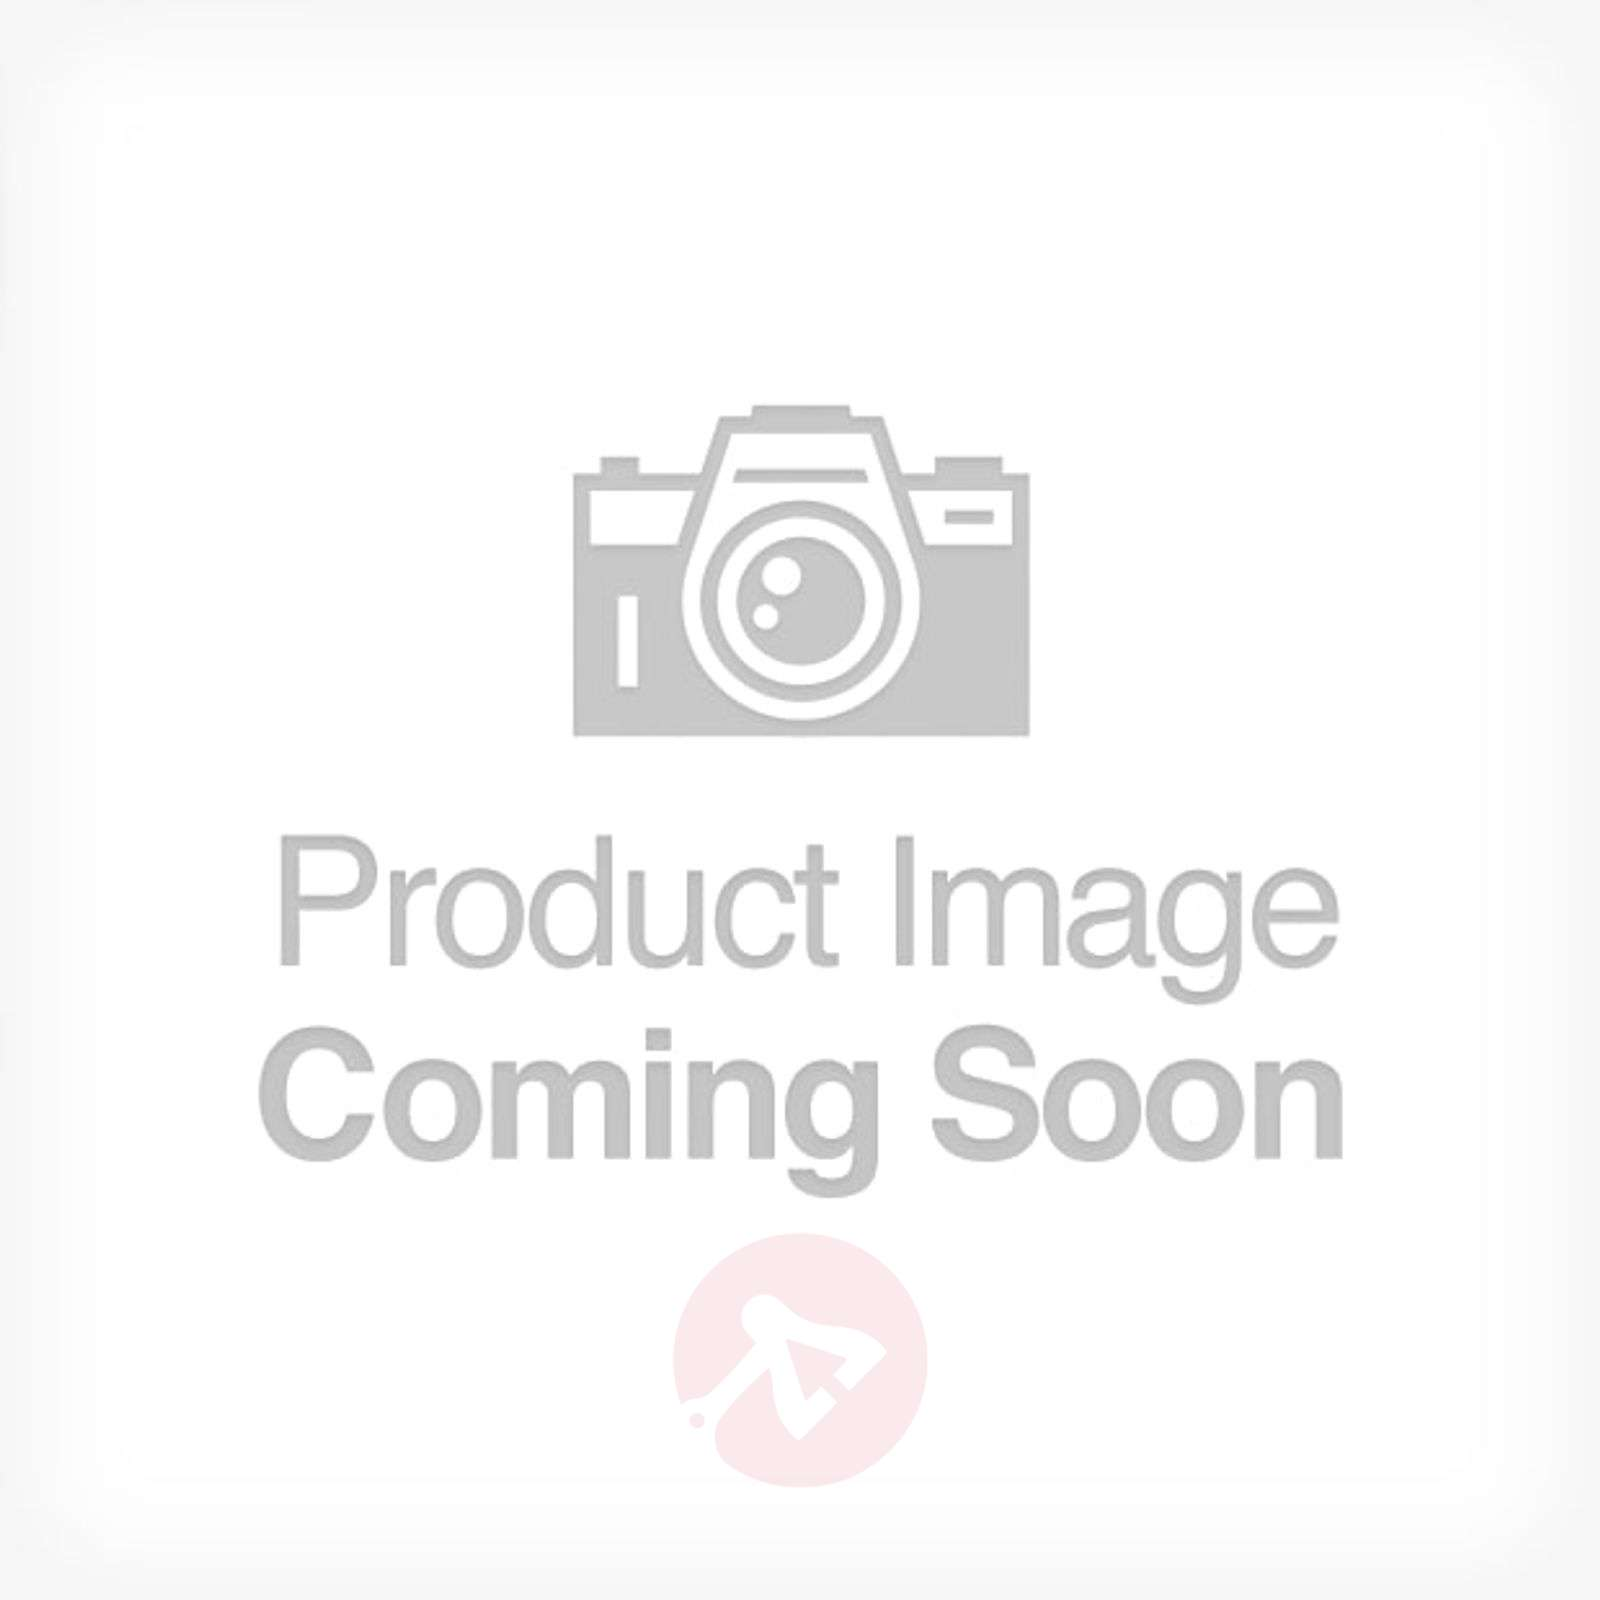 Allemagne Ceiling Light Country House-4508450-01